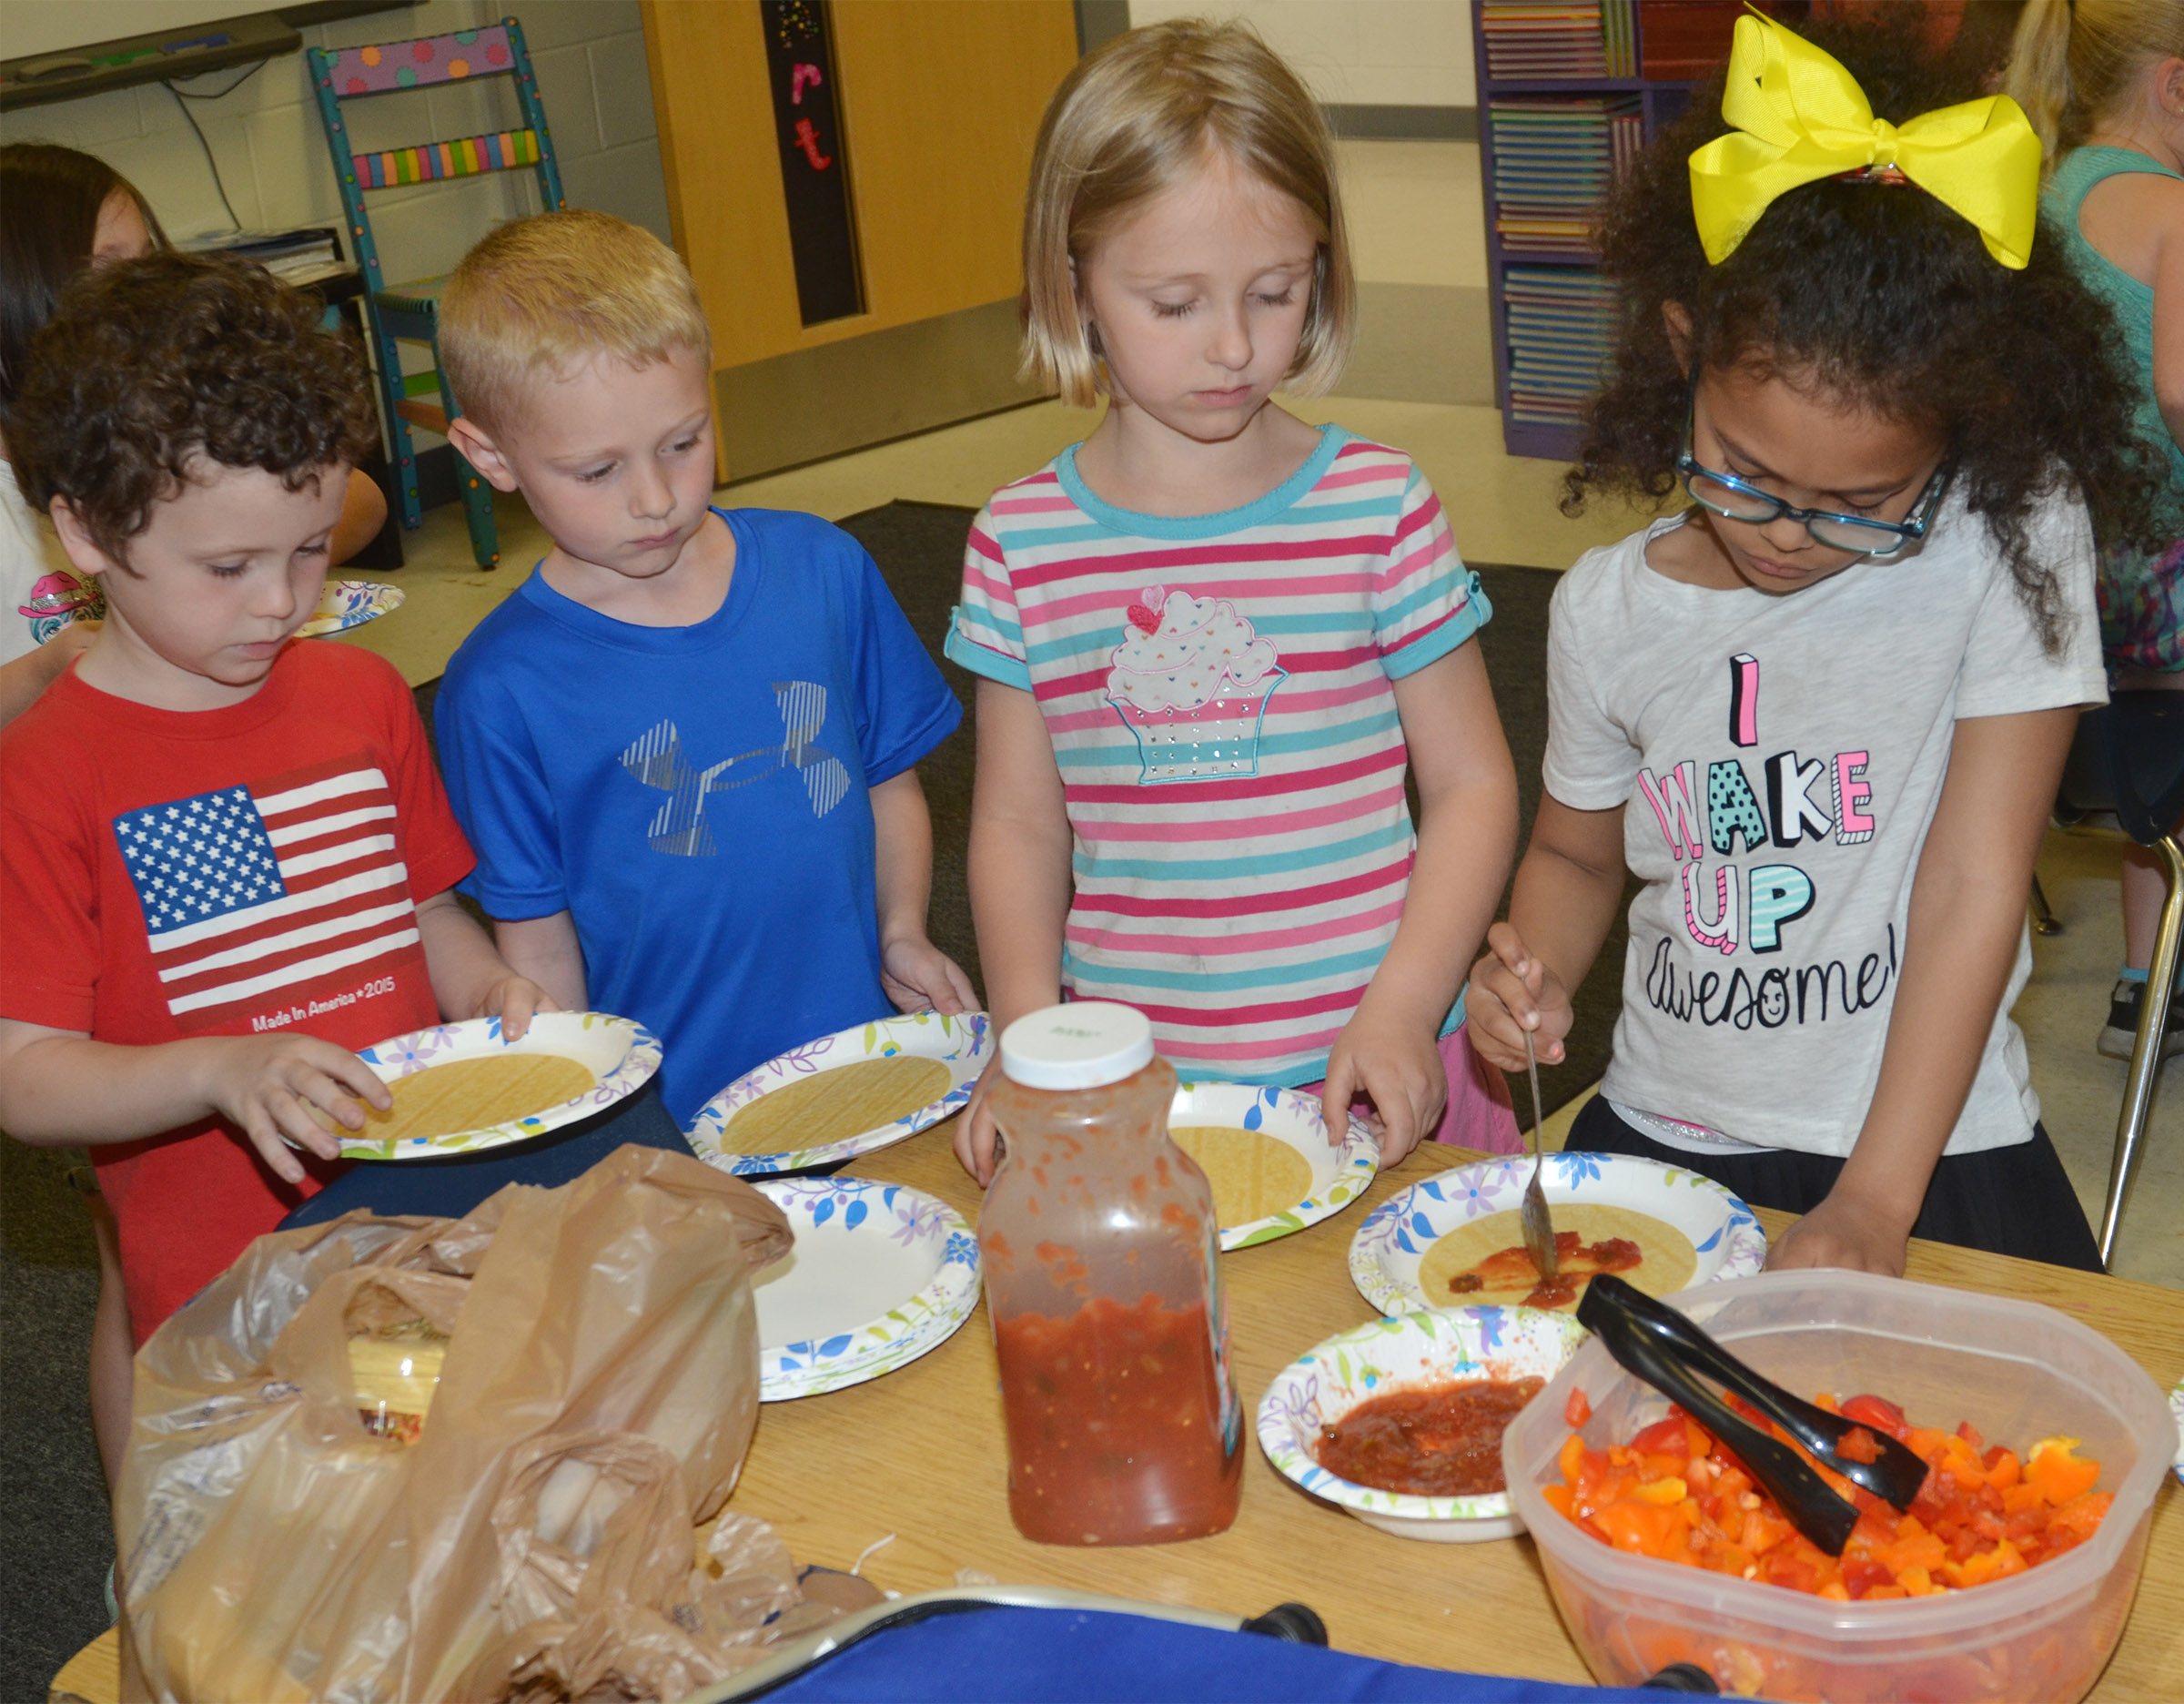 CES kindergarteners, from left, Braydan Dyer, Jackson Wright, LeeAnna Garvin and Marlee Dickens make their own Mexican pizzas.